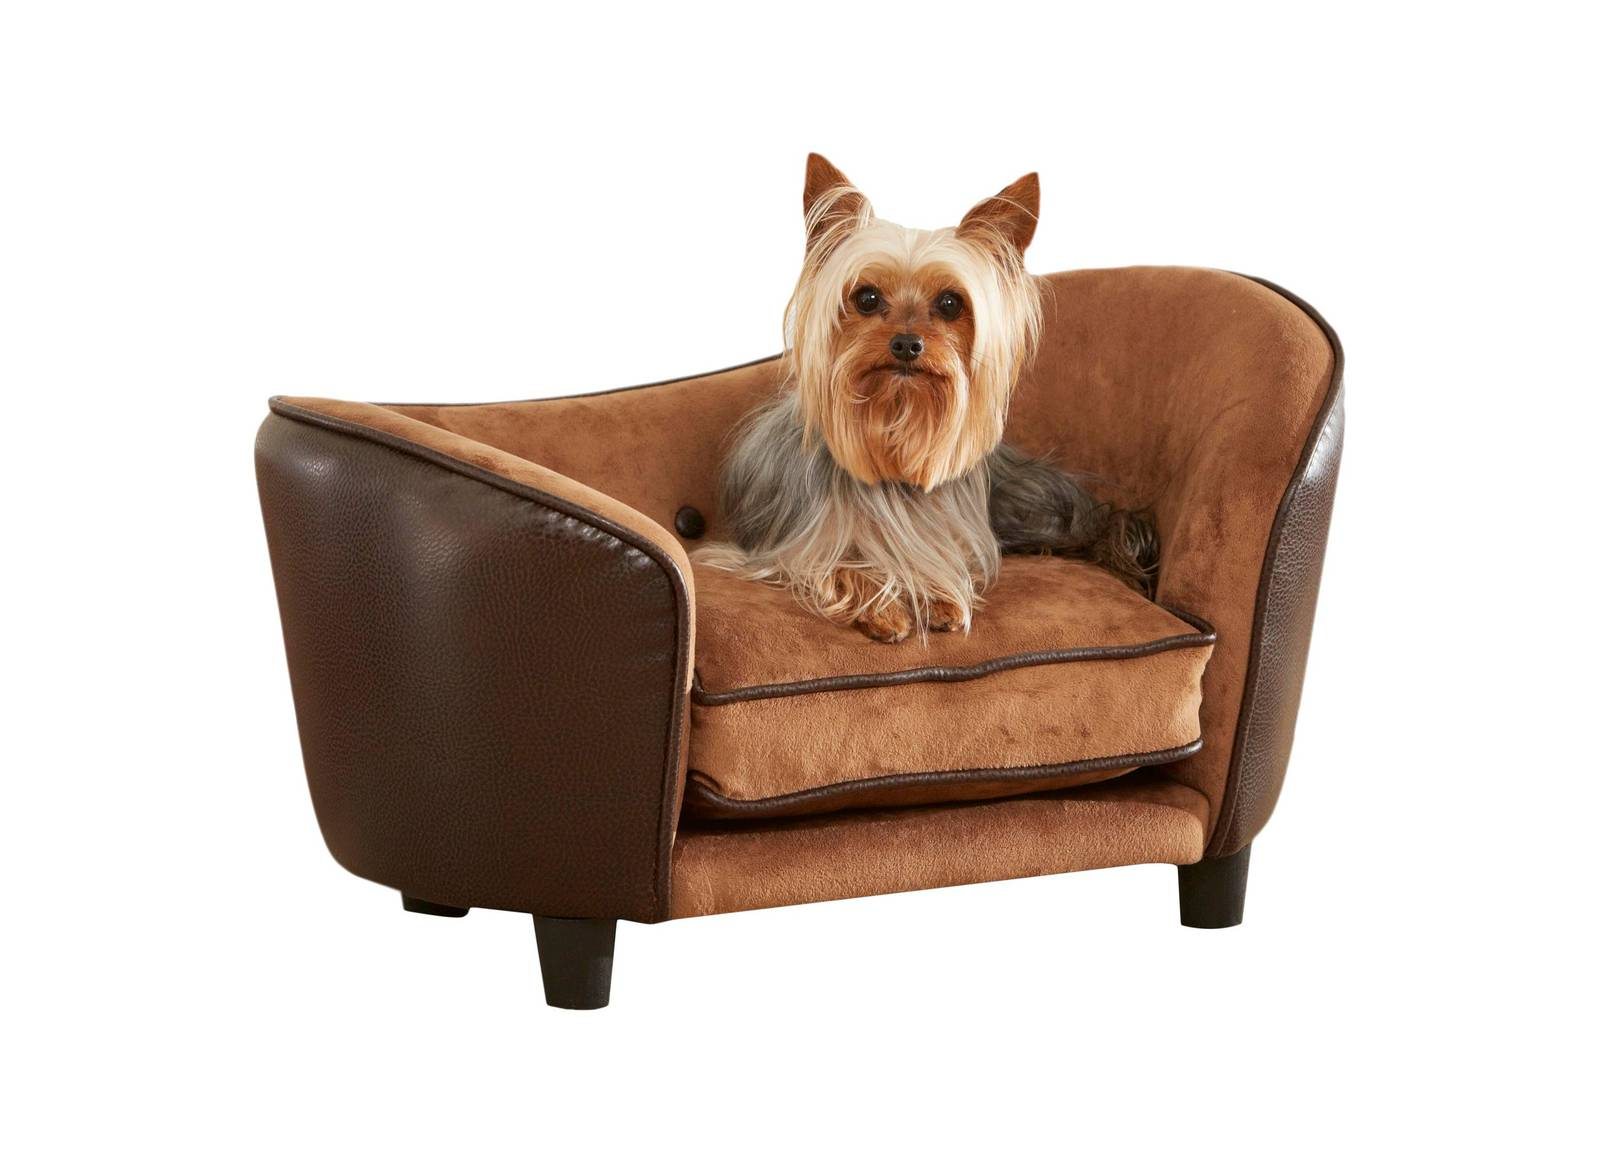 Pet Bed Sofa Couch Dog Cat Products Supplies Play Sleep